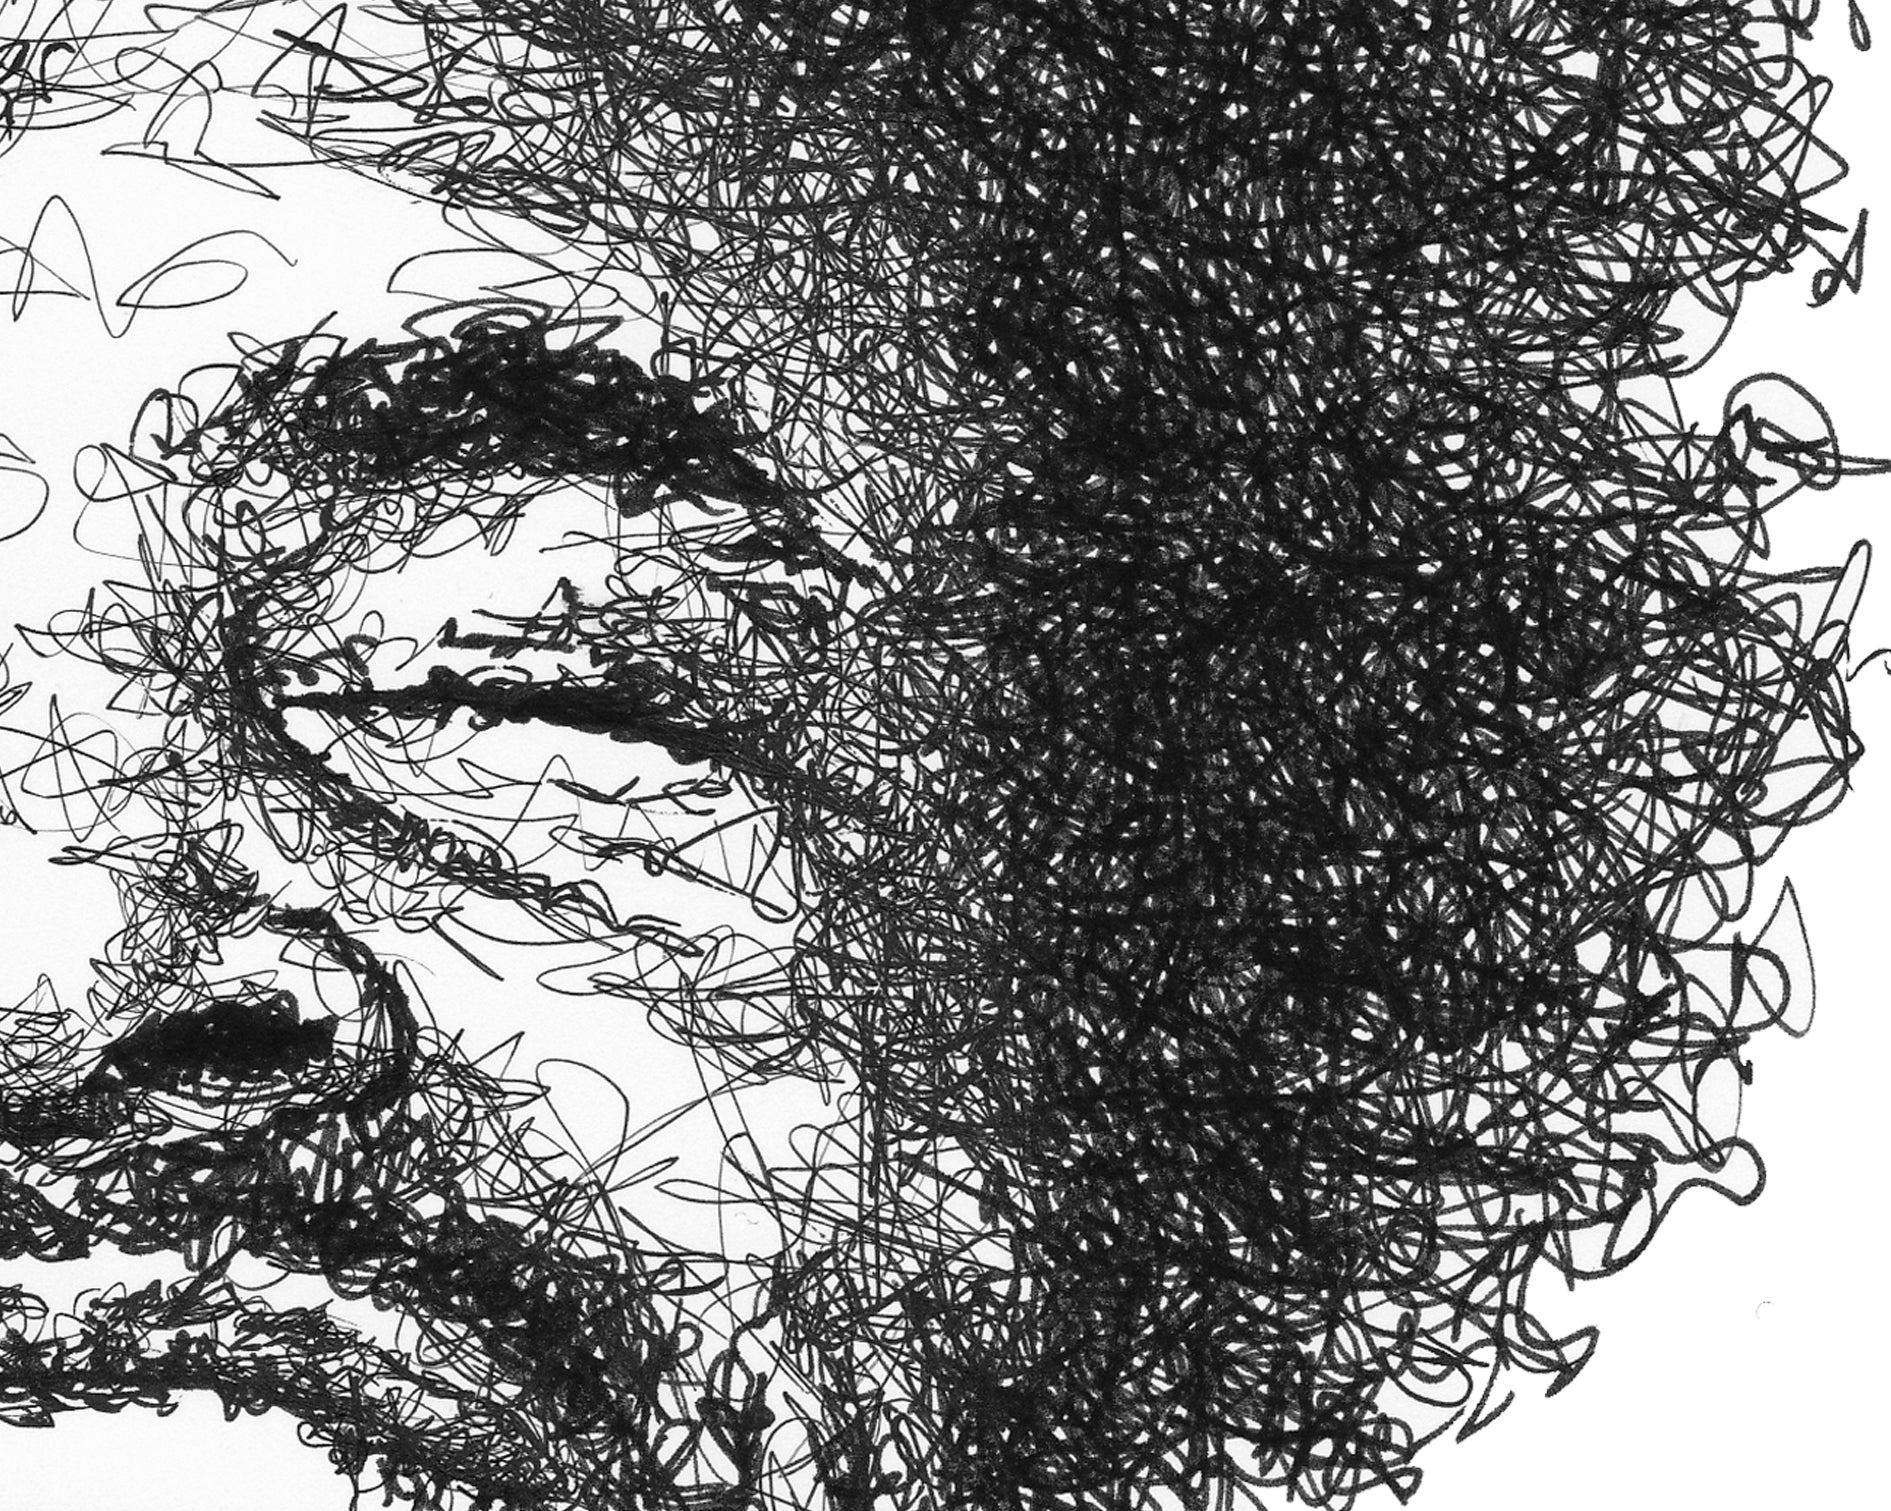 Scribbled Questlove